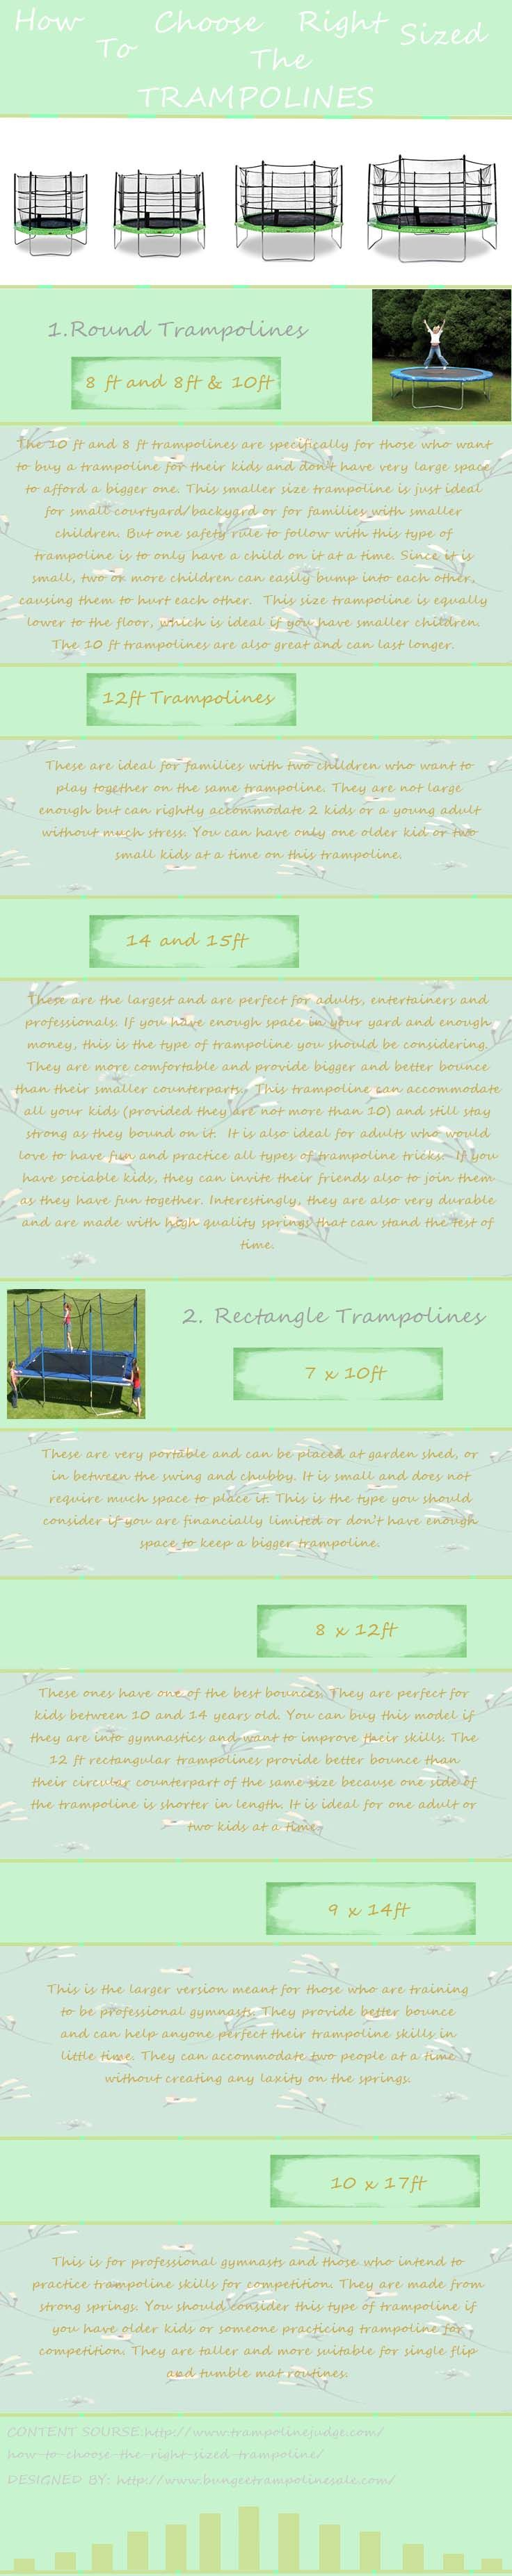 How to Choose the Right Sized Trampoline